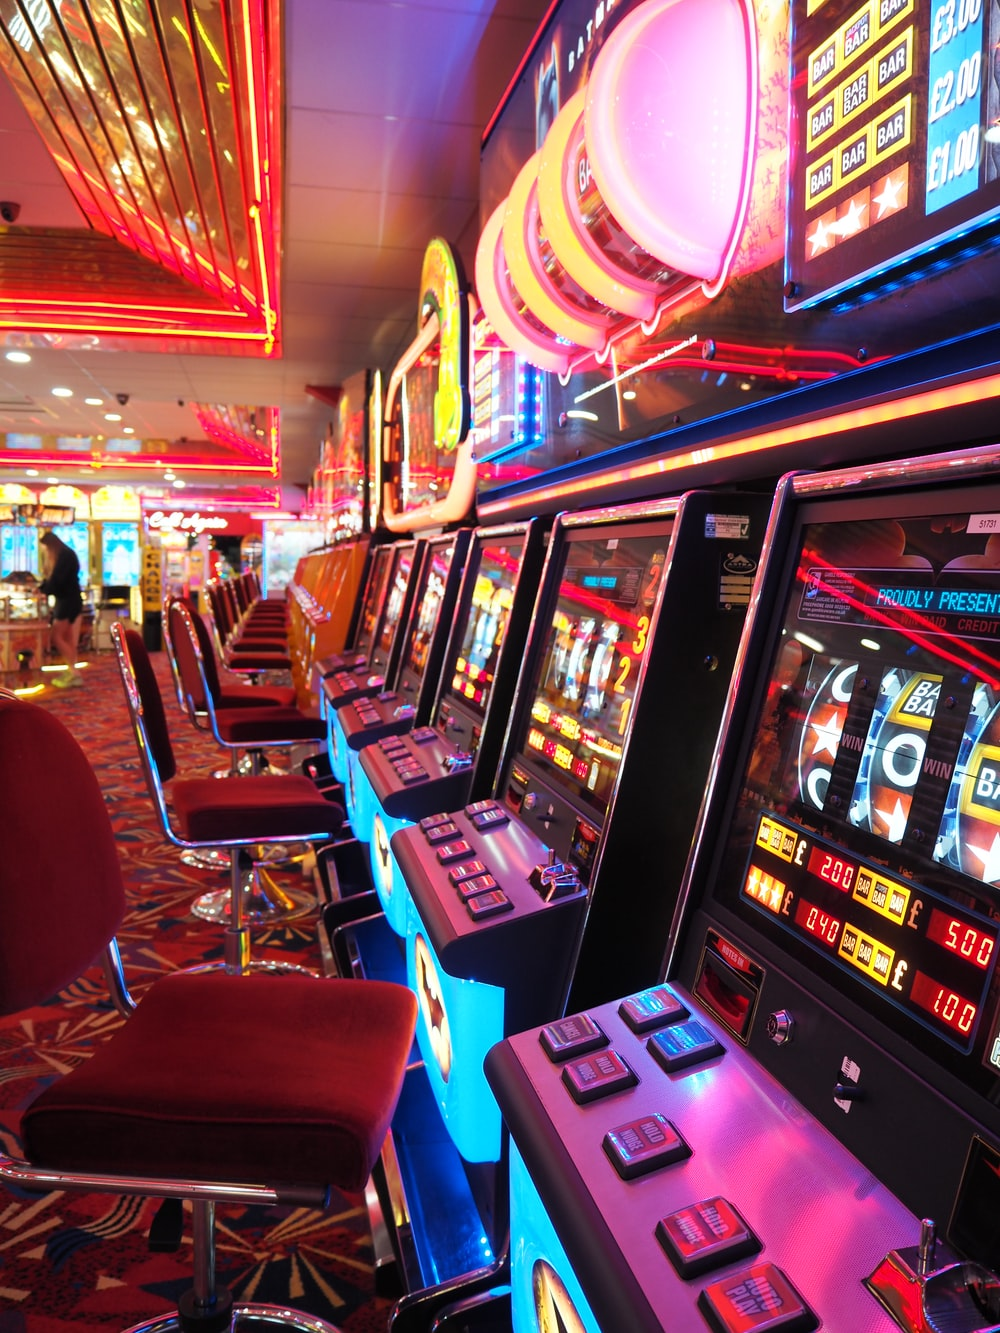 arcade machine with red and white chairs